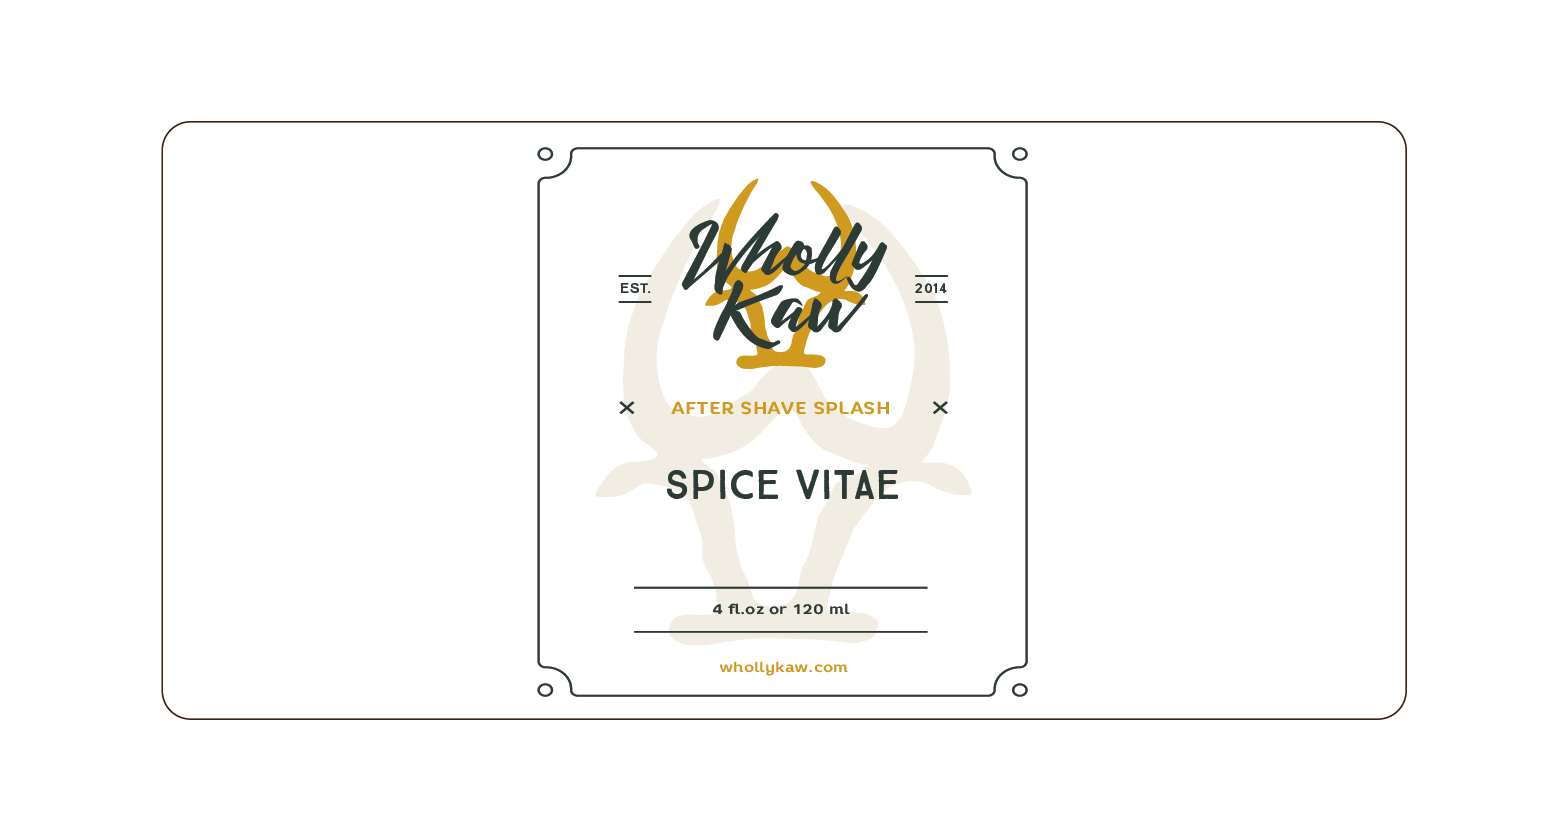 Wholly Kaw - Spice Vitae - Aftershave image